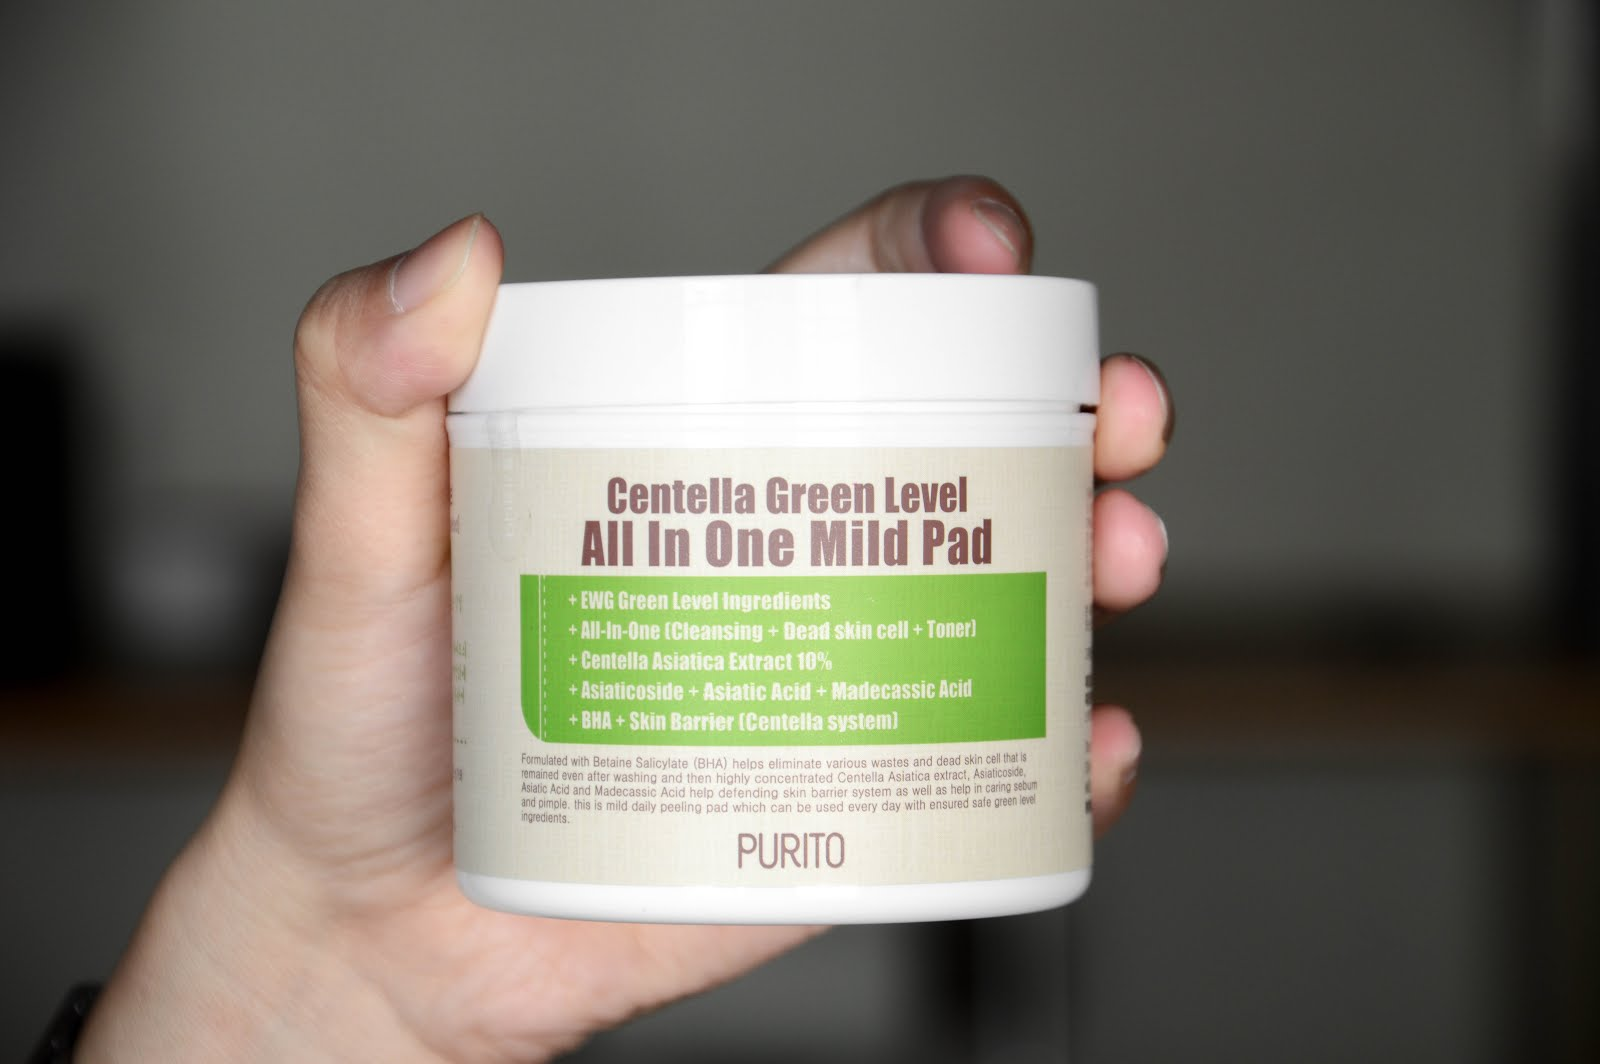 Purito Centella Green Level All In One Mild Pad review